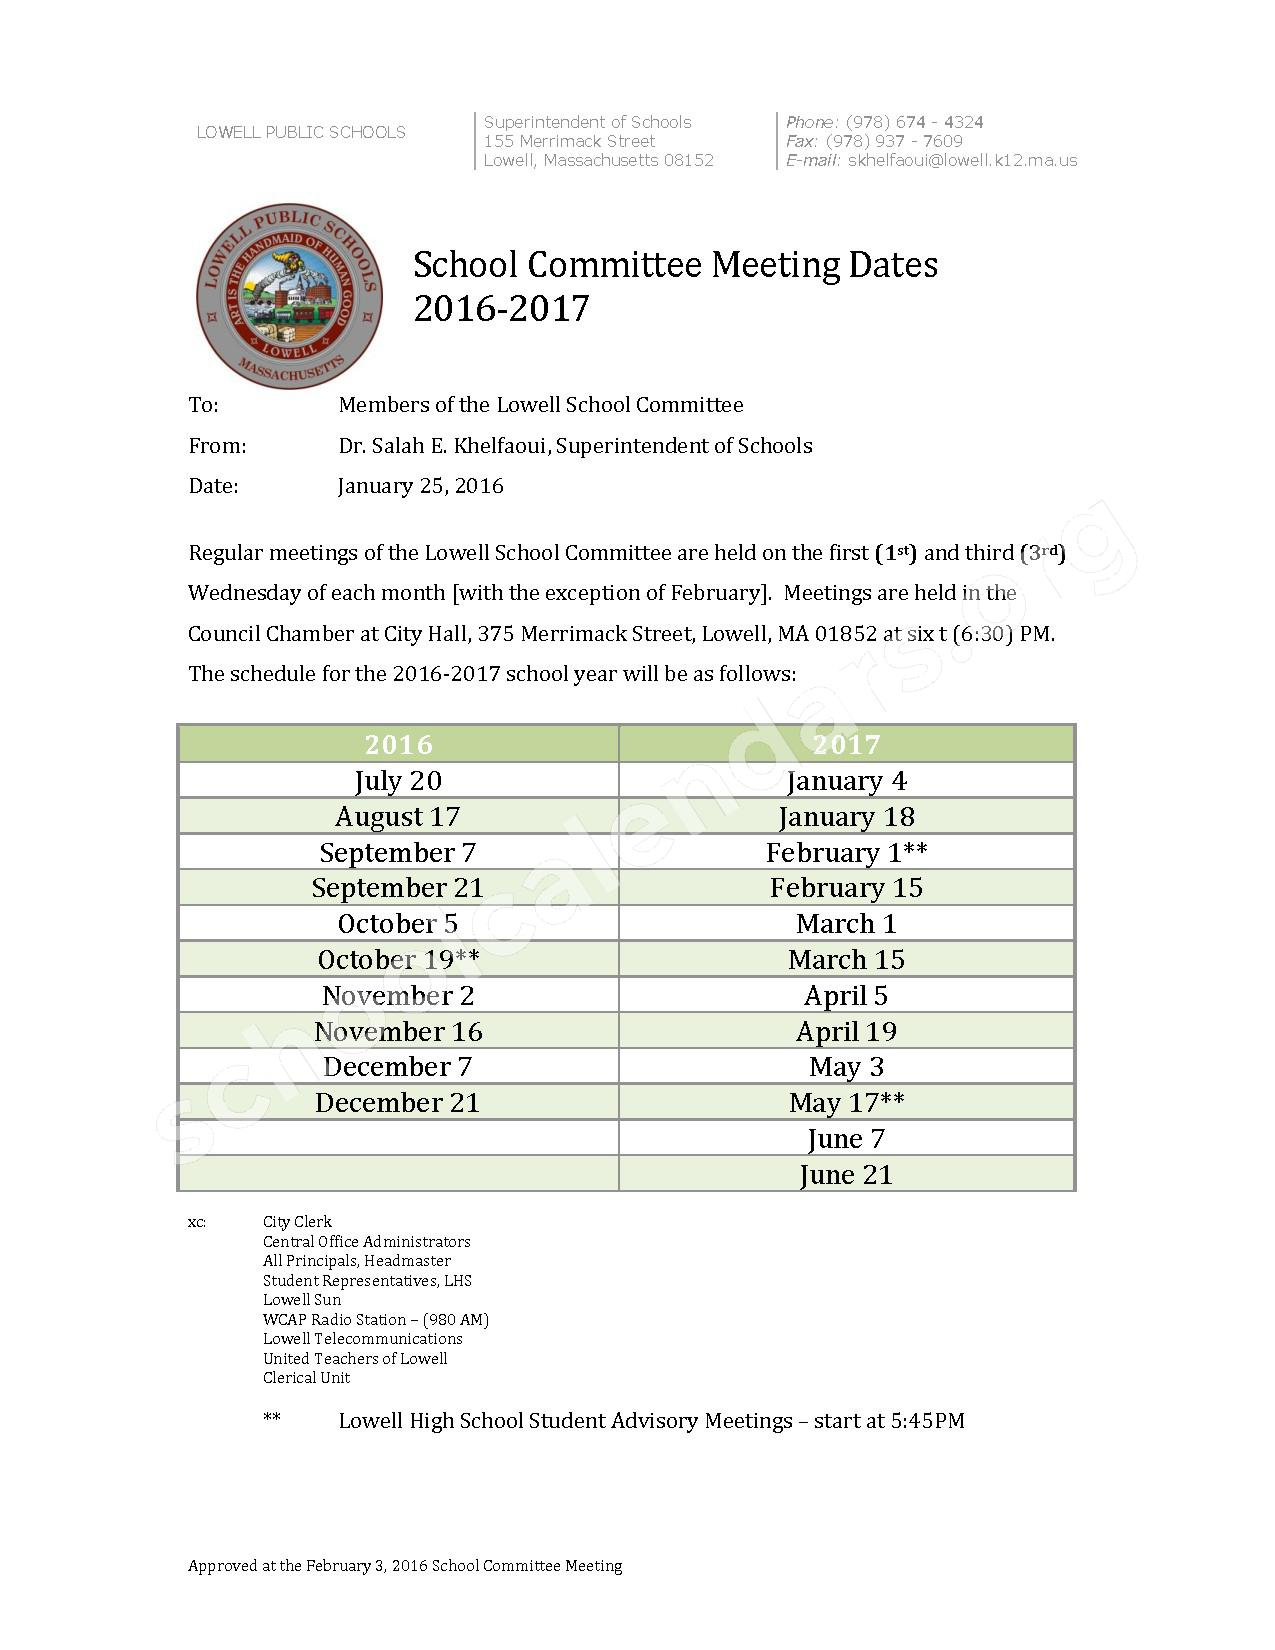 School Committee Meetings (2016 - 2017) page 1